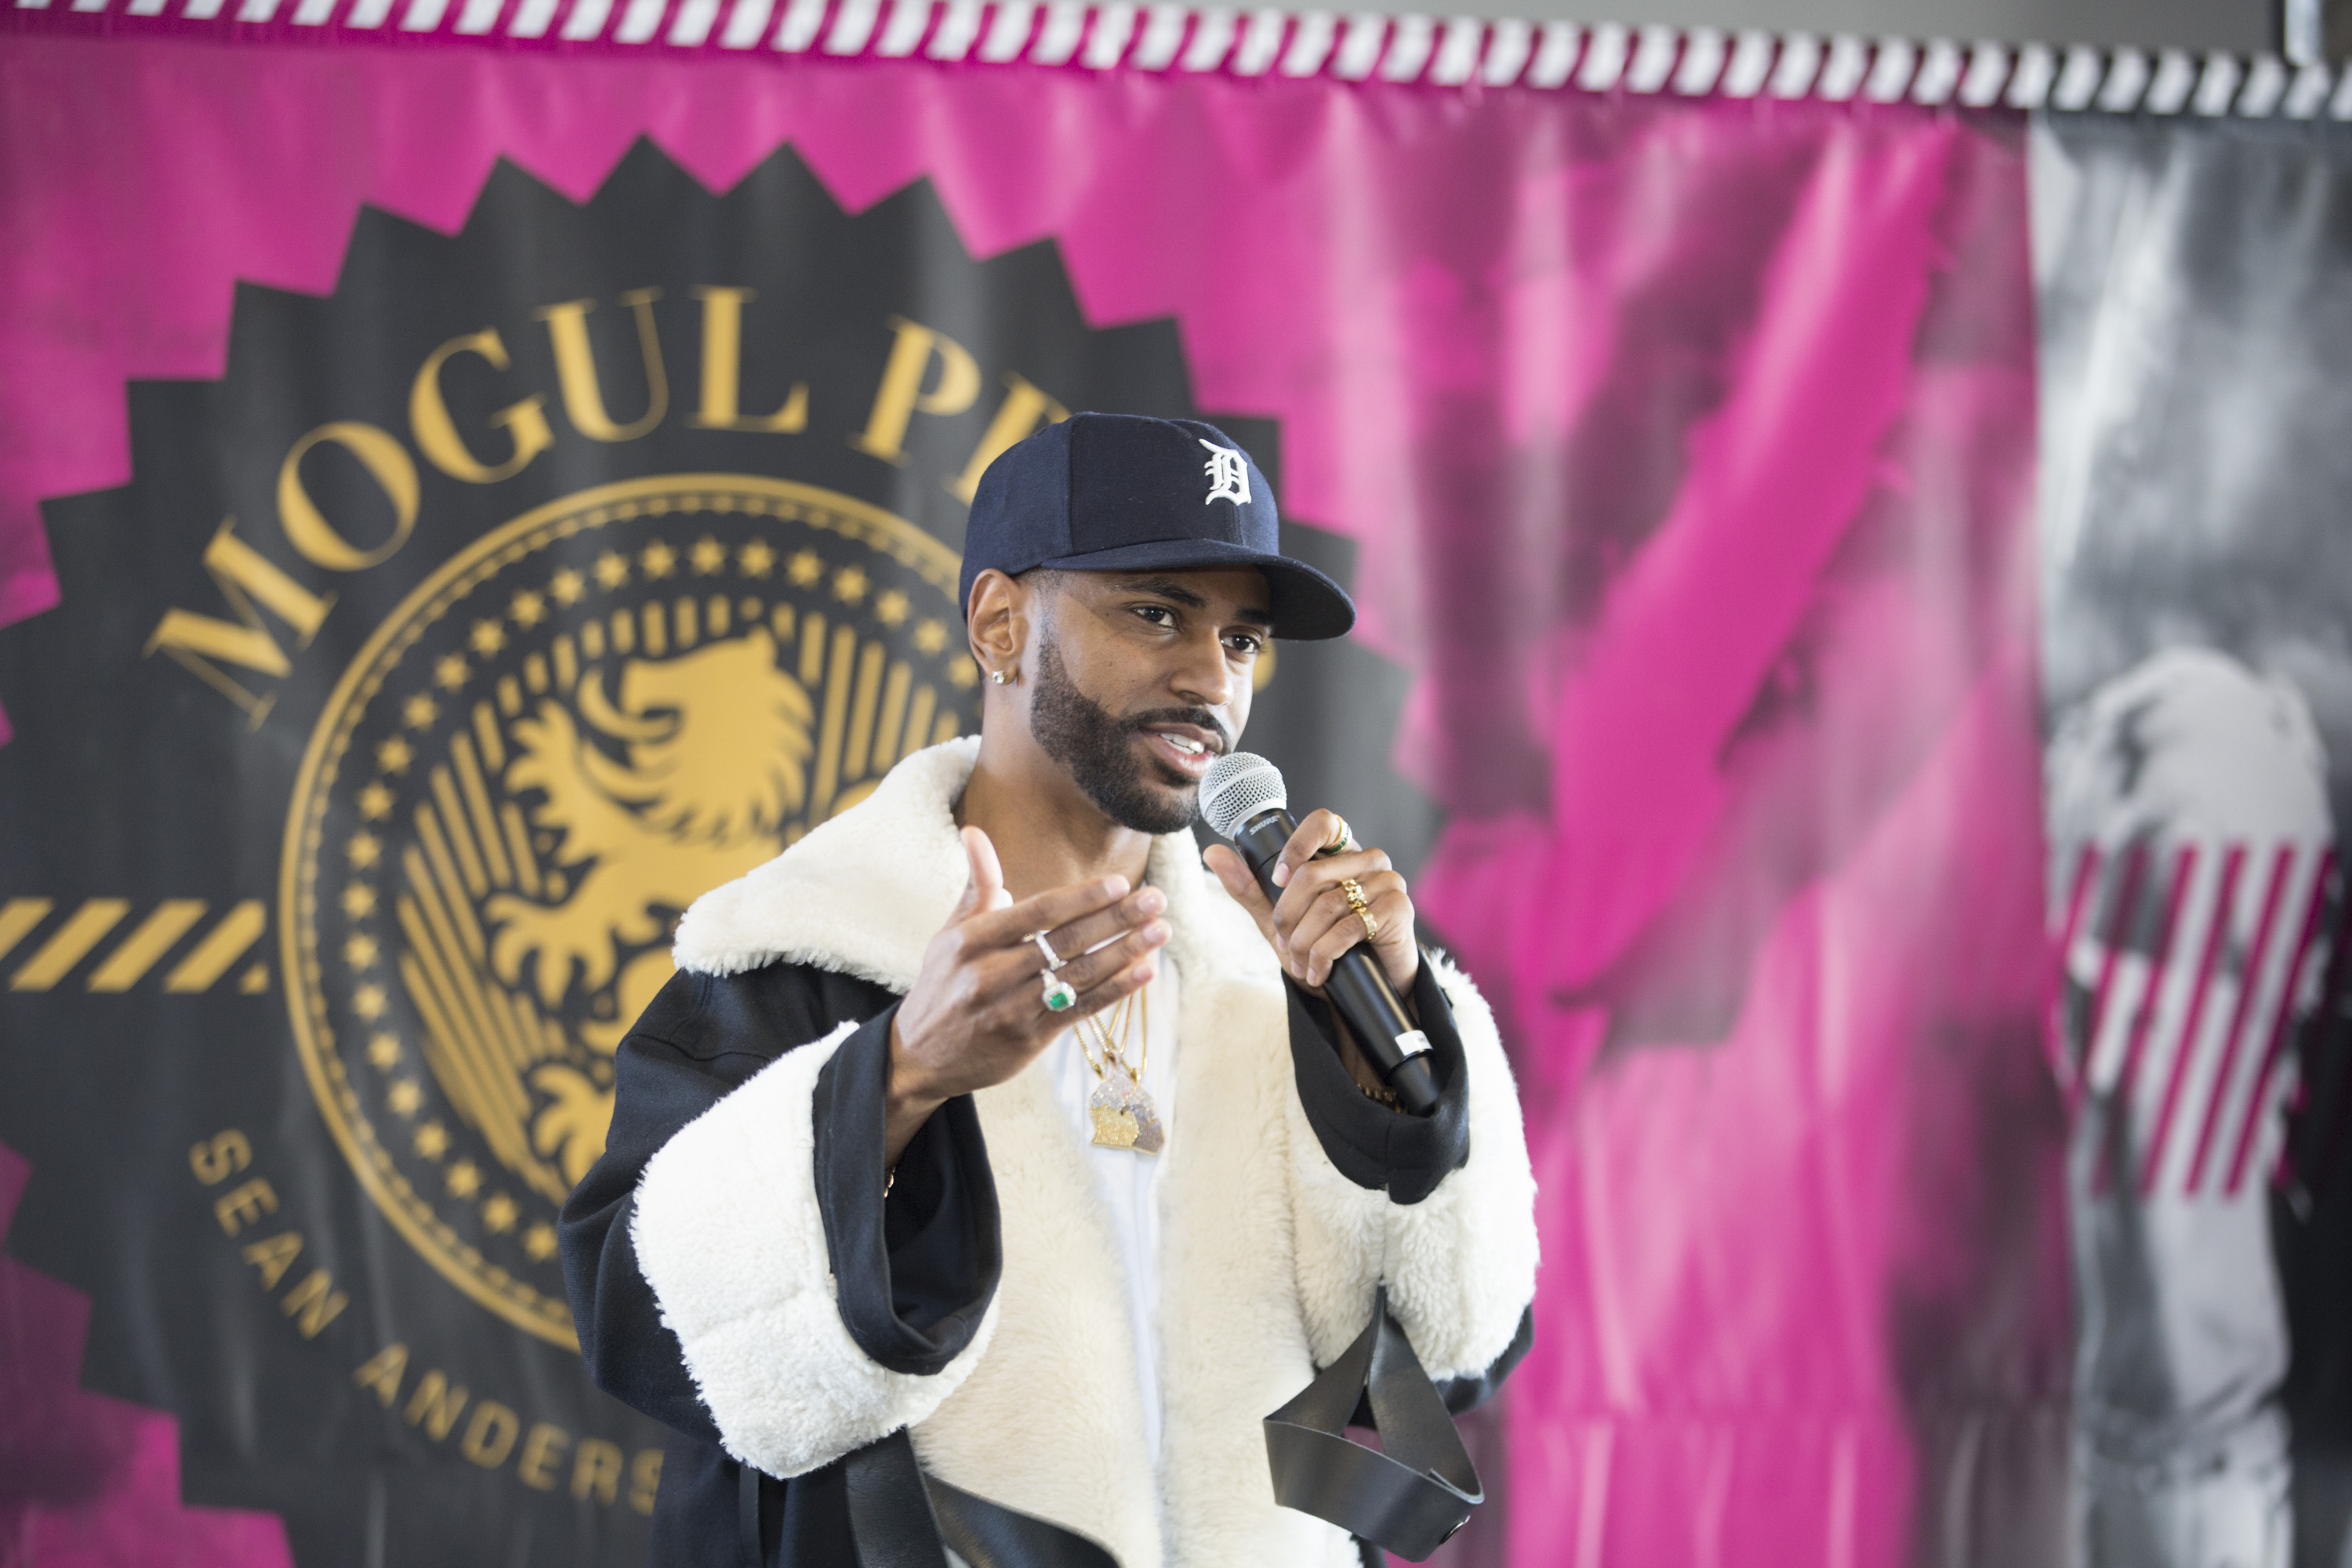 Big Sean's Mogul Prep Event